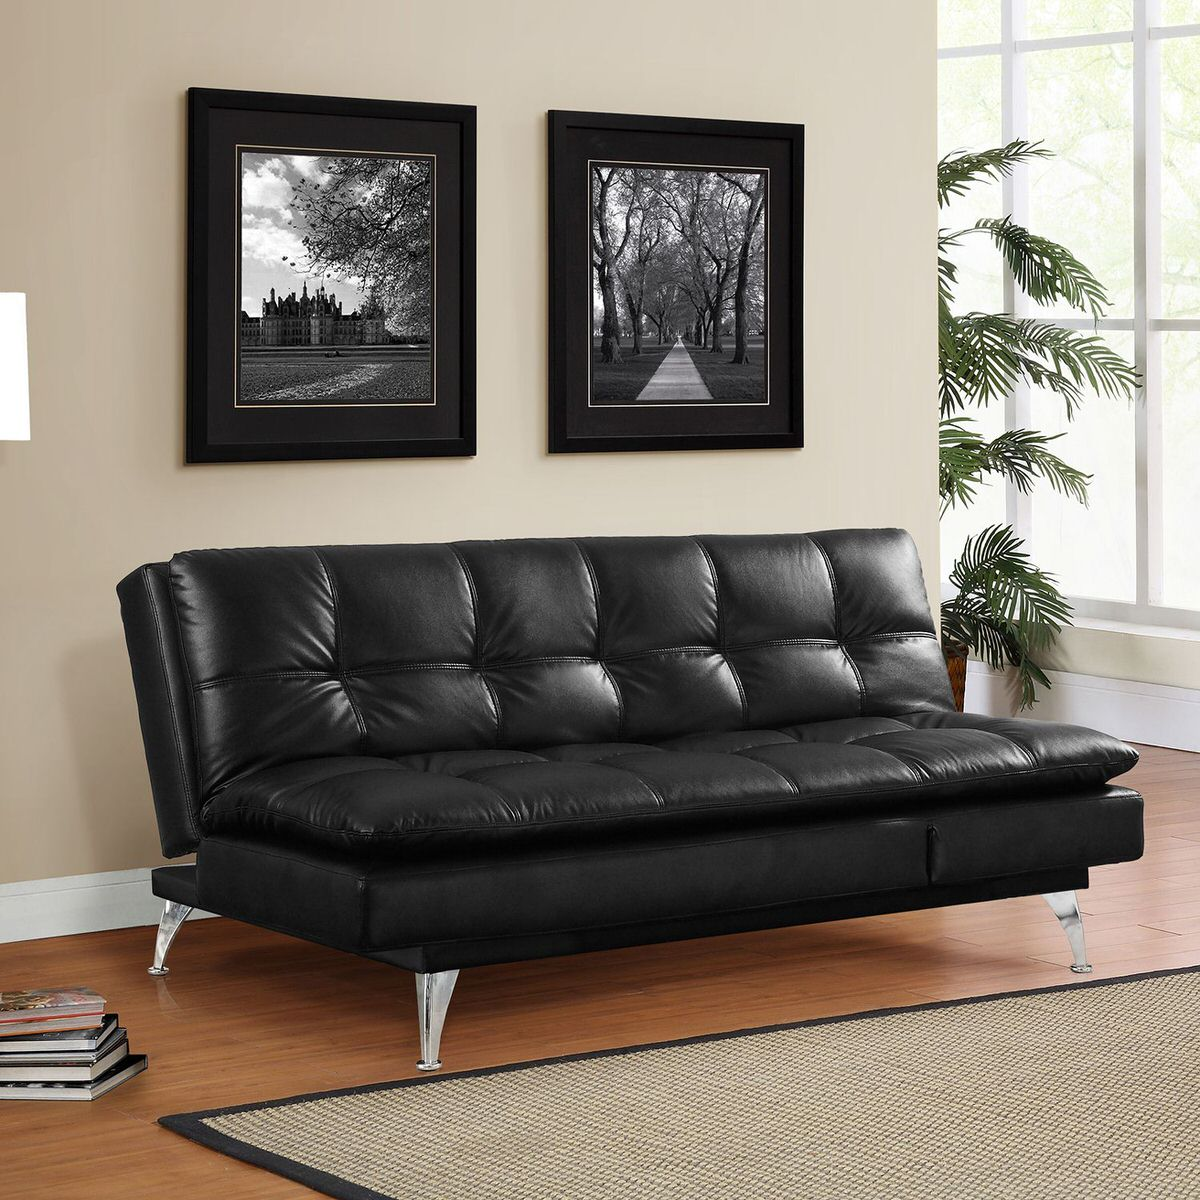 leather sofa sams club casters wheels gabrielle setra bed black by lifestyle solutions